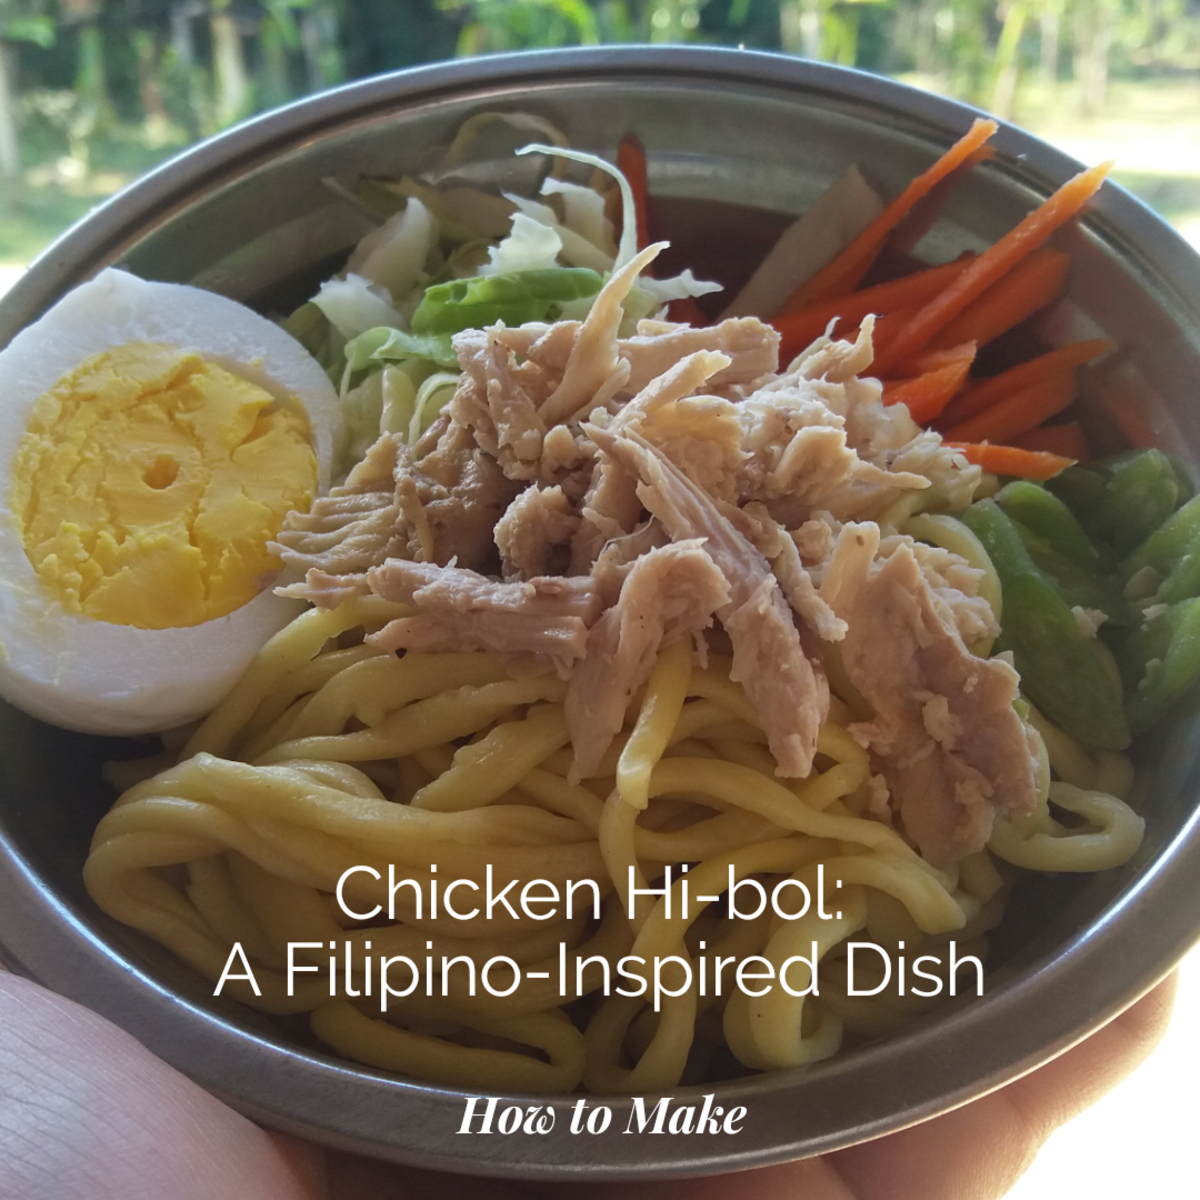 How to Make Chicken Hi-Bol: A Filipino-Inspired Dish